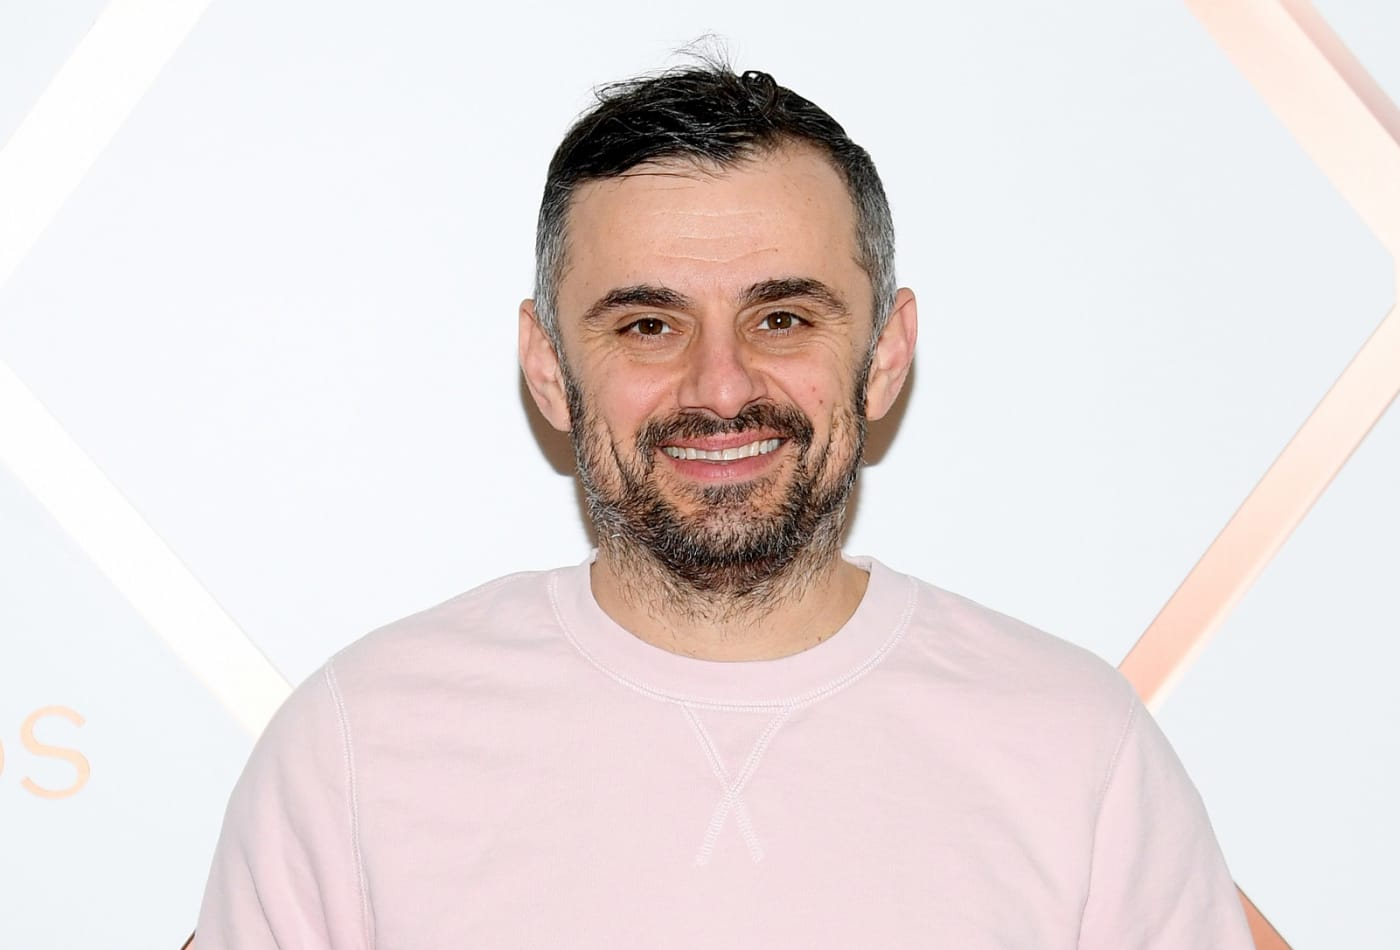 Gary Vee made millions investing early in Uber, Snapchat and cryptocurrencies. Here's how he chooses where to put his money